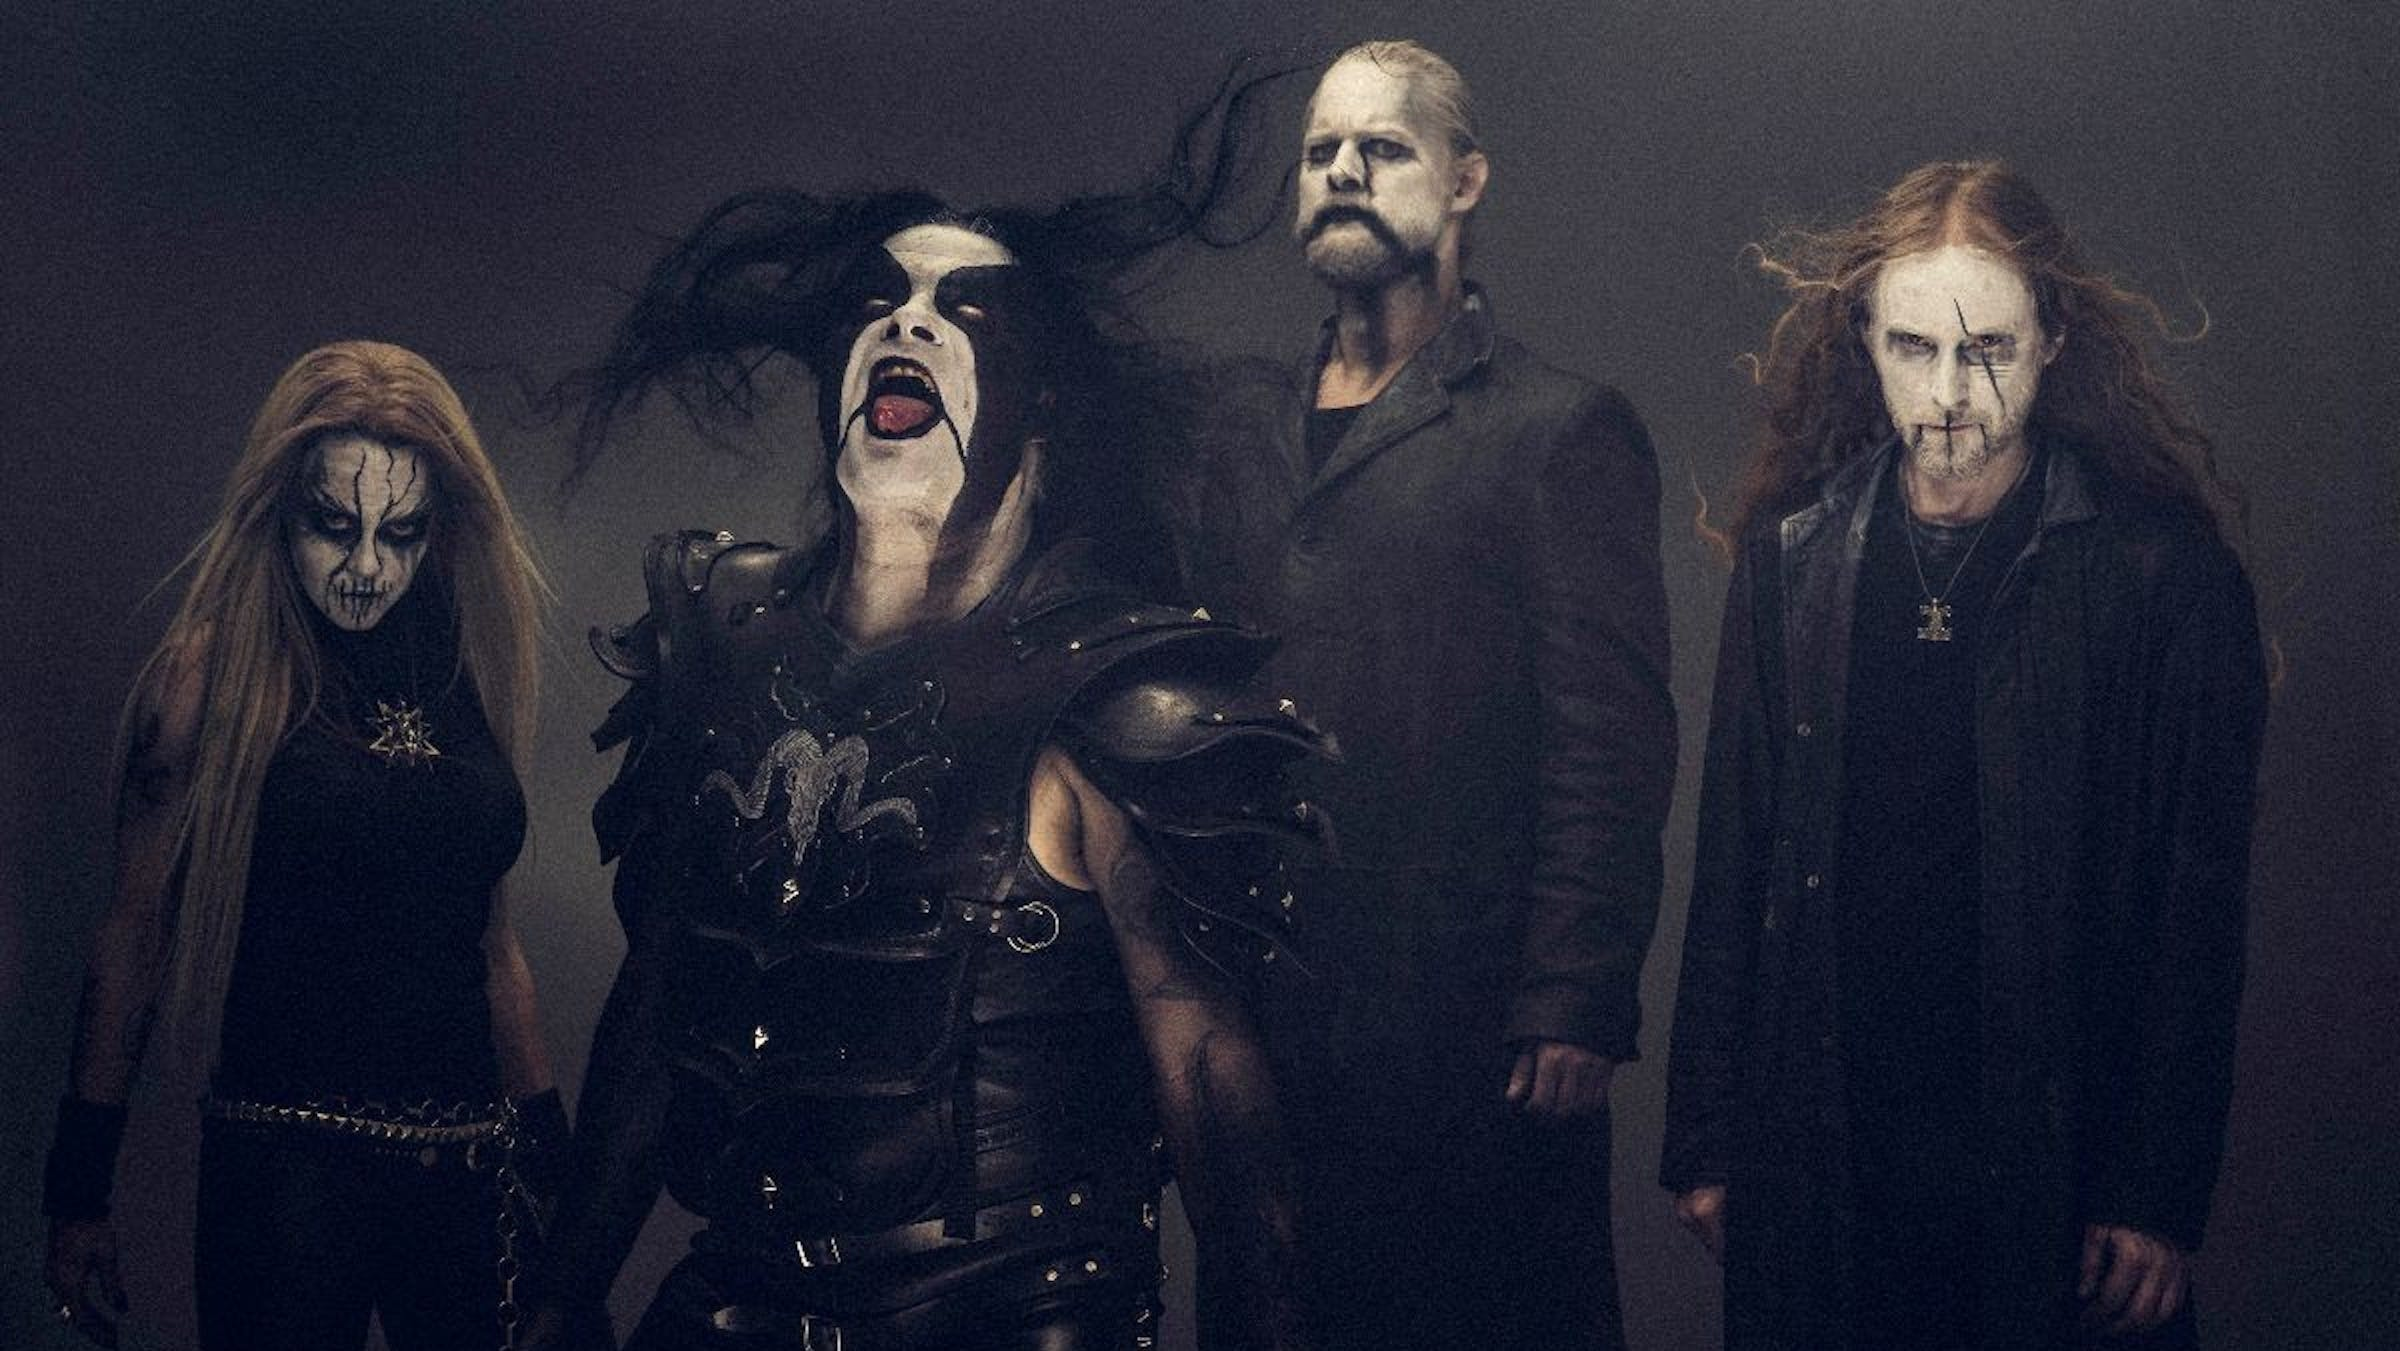 Exclusive: Listen To Abbath's New Song Calm In Ire Of Hurricane